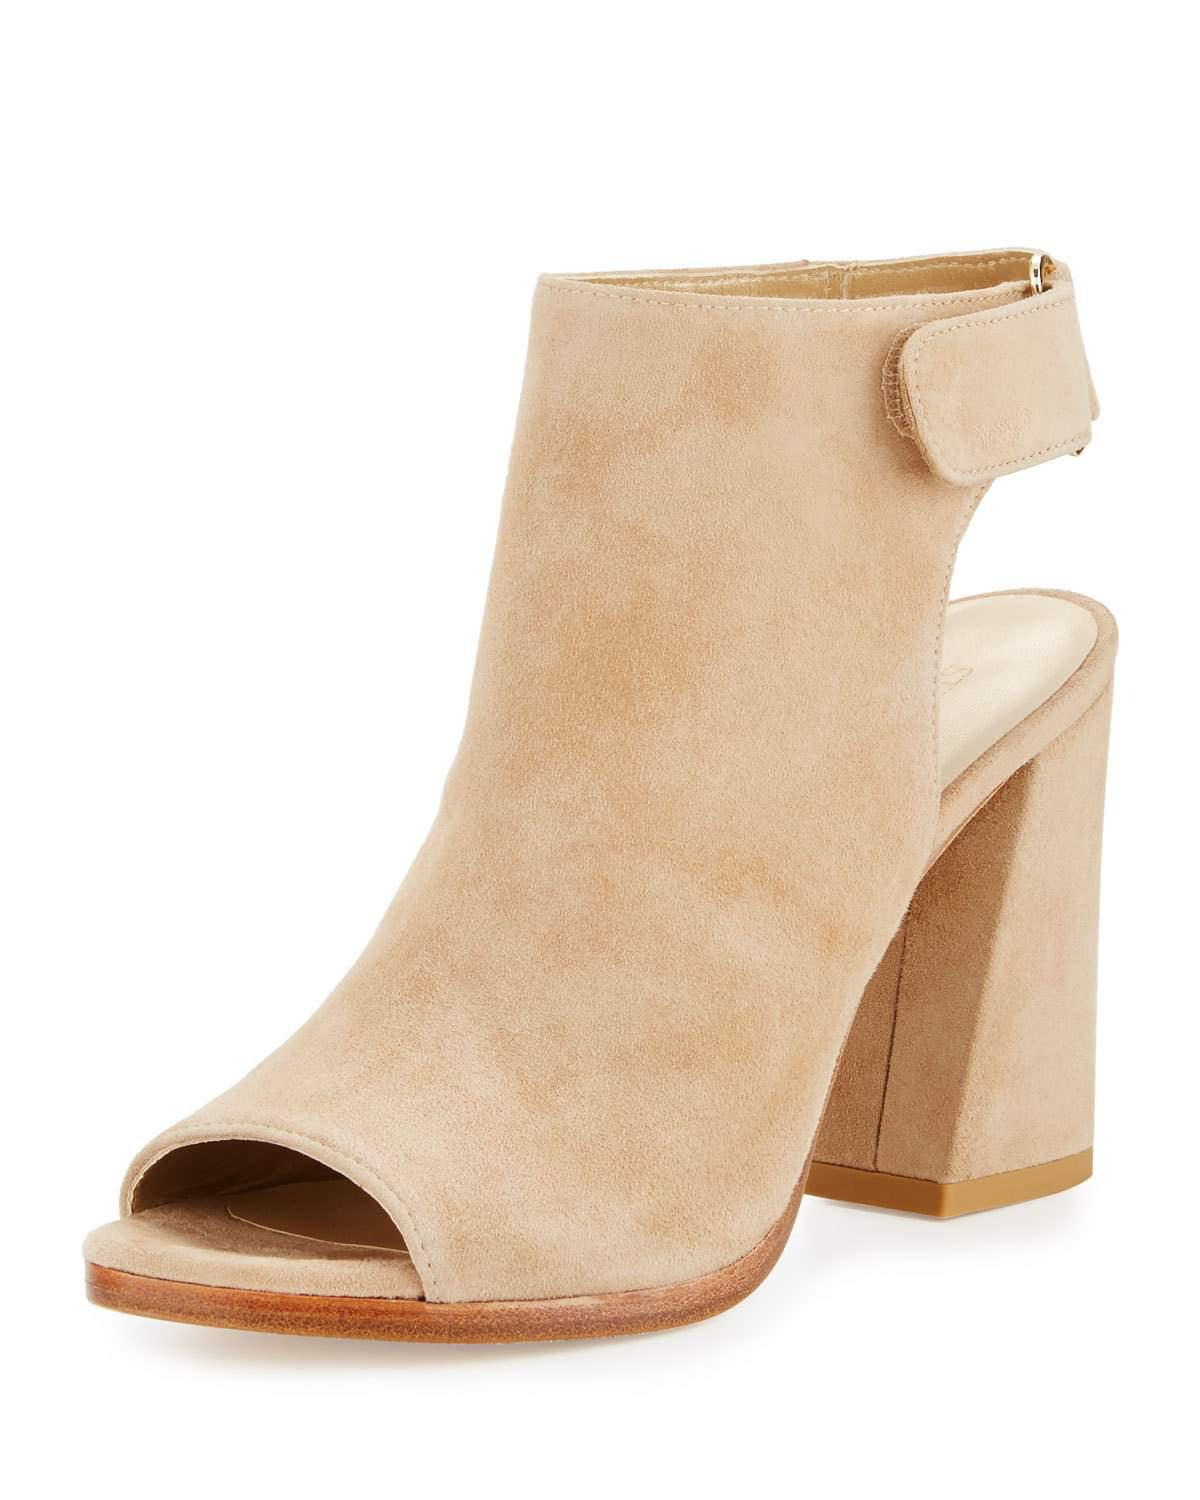 big sale Stuart Weitzman Frontroom sandals outlet where can you find cheap 2014 new Isuu7rGgz